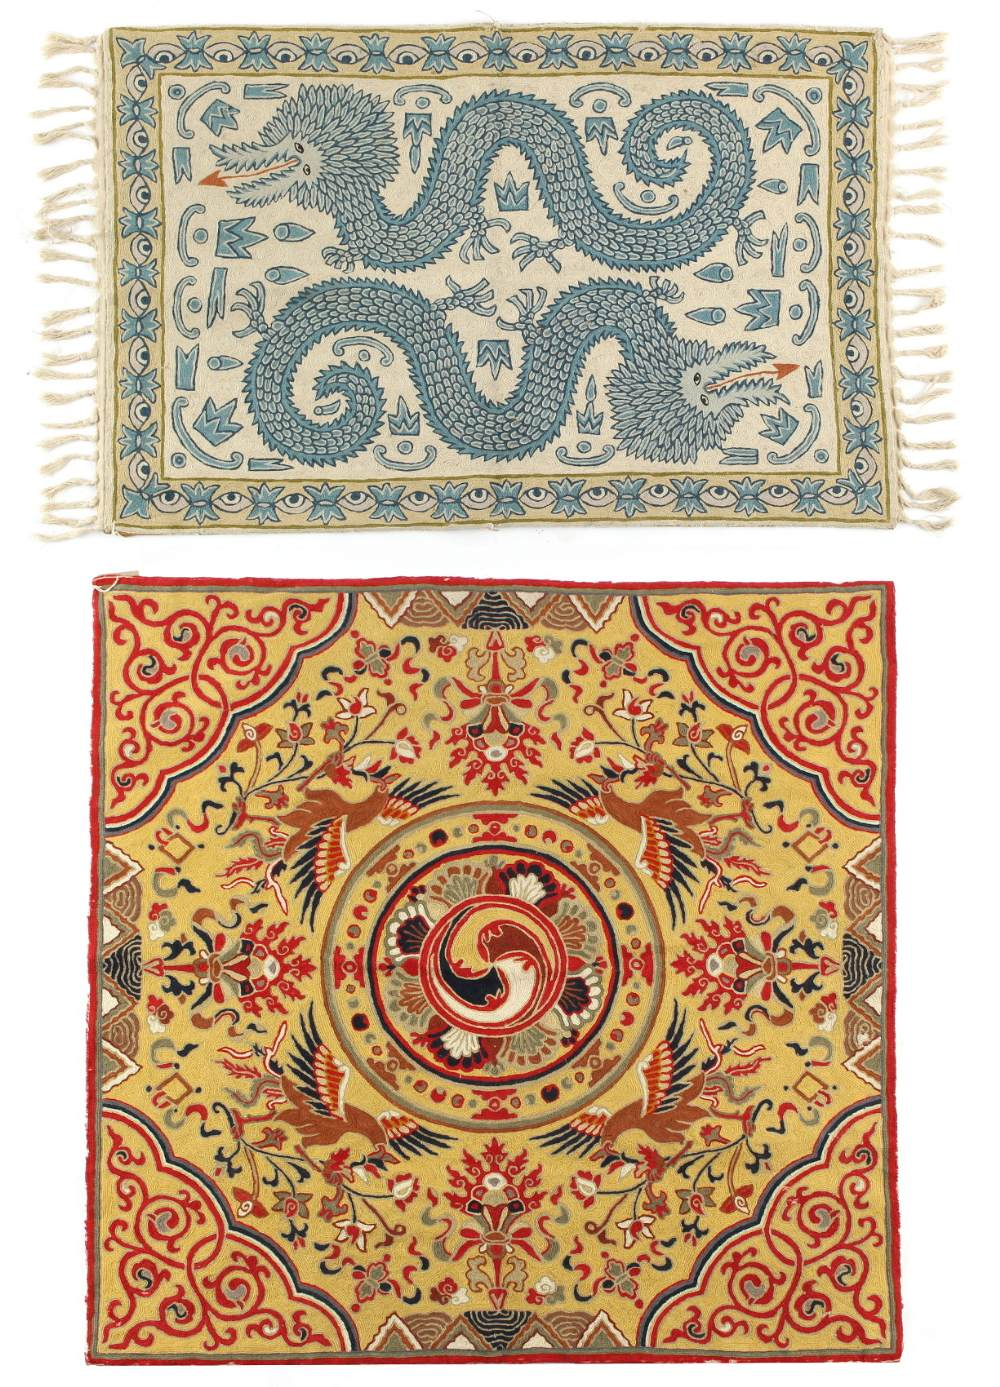 Lot 22 - Two crewel work rugs in the Chinese taste, the larger with four phoenixes on a yellow ground, the